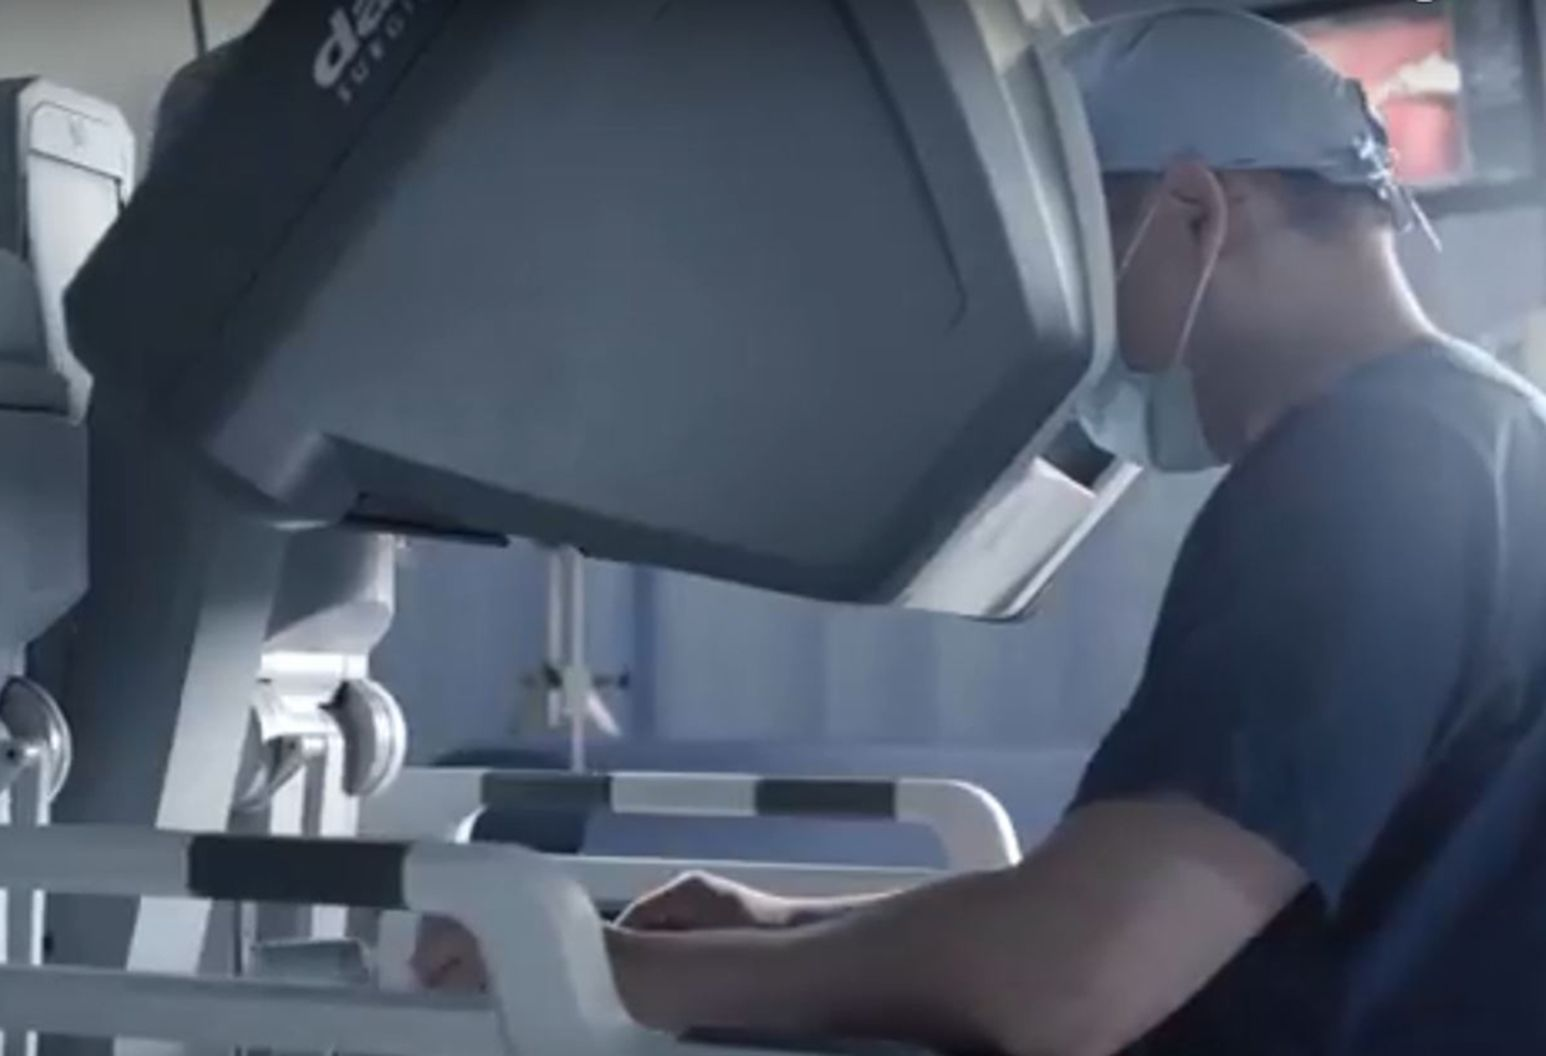 A doctor using a robotic surgery machine.